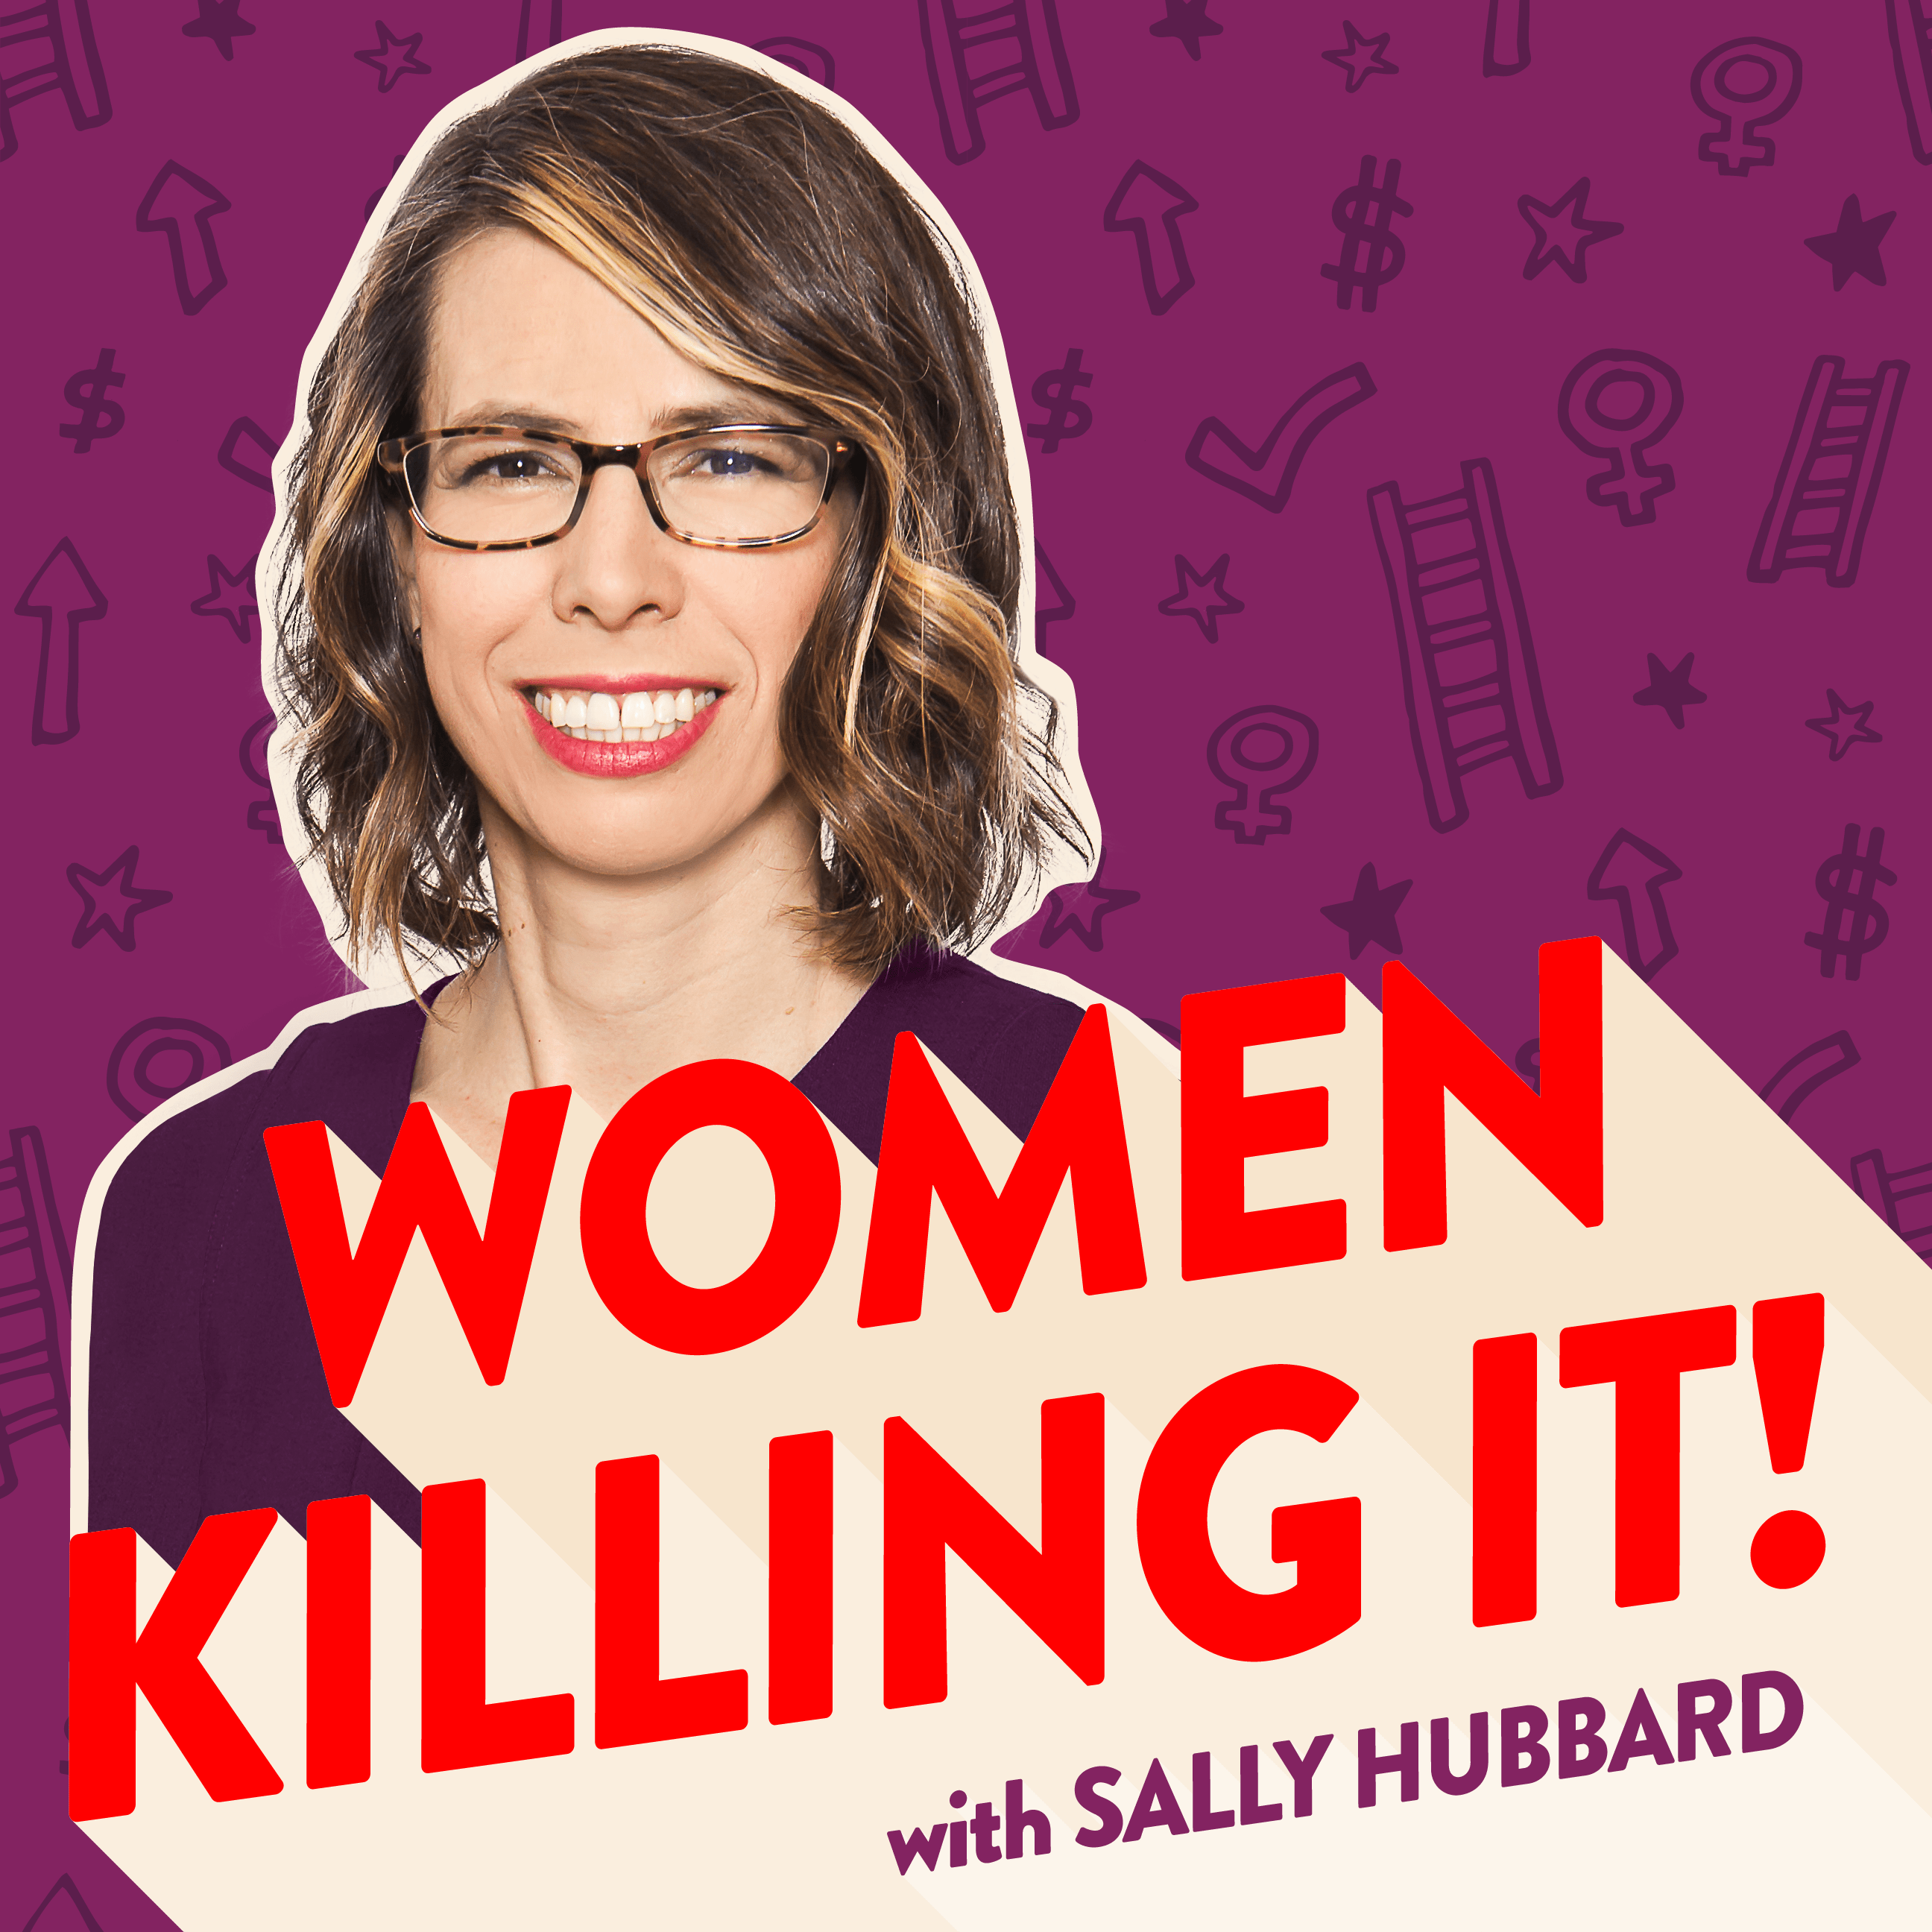 Women Killing It, with Sally Hubbard